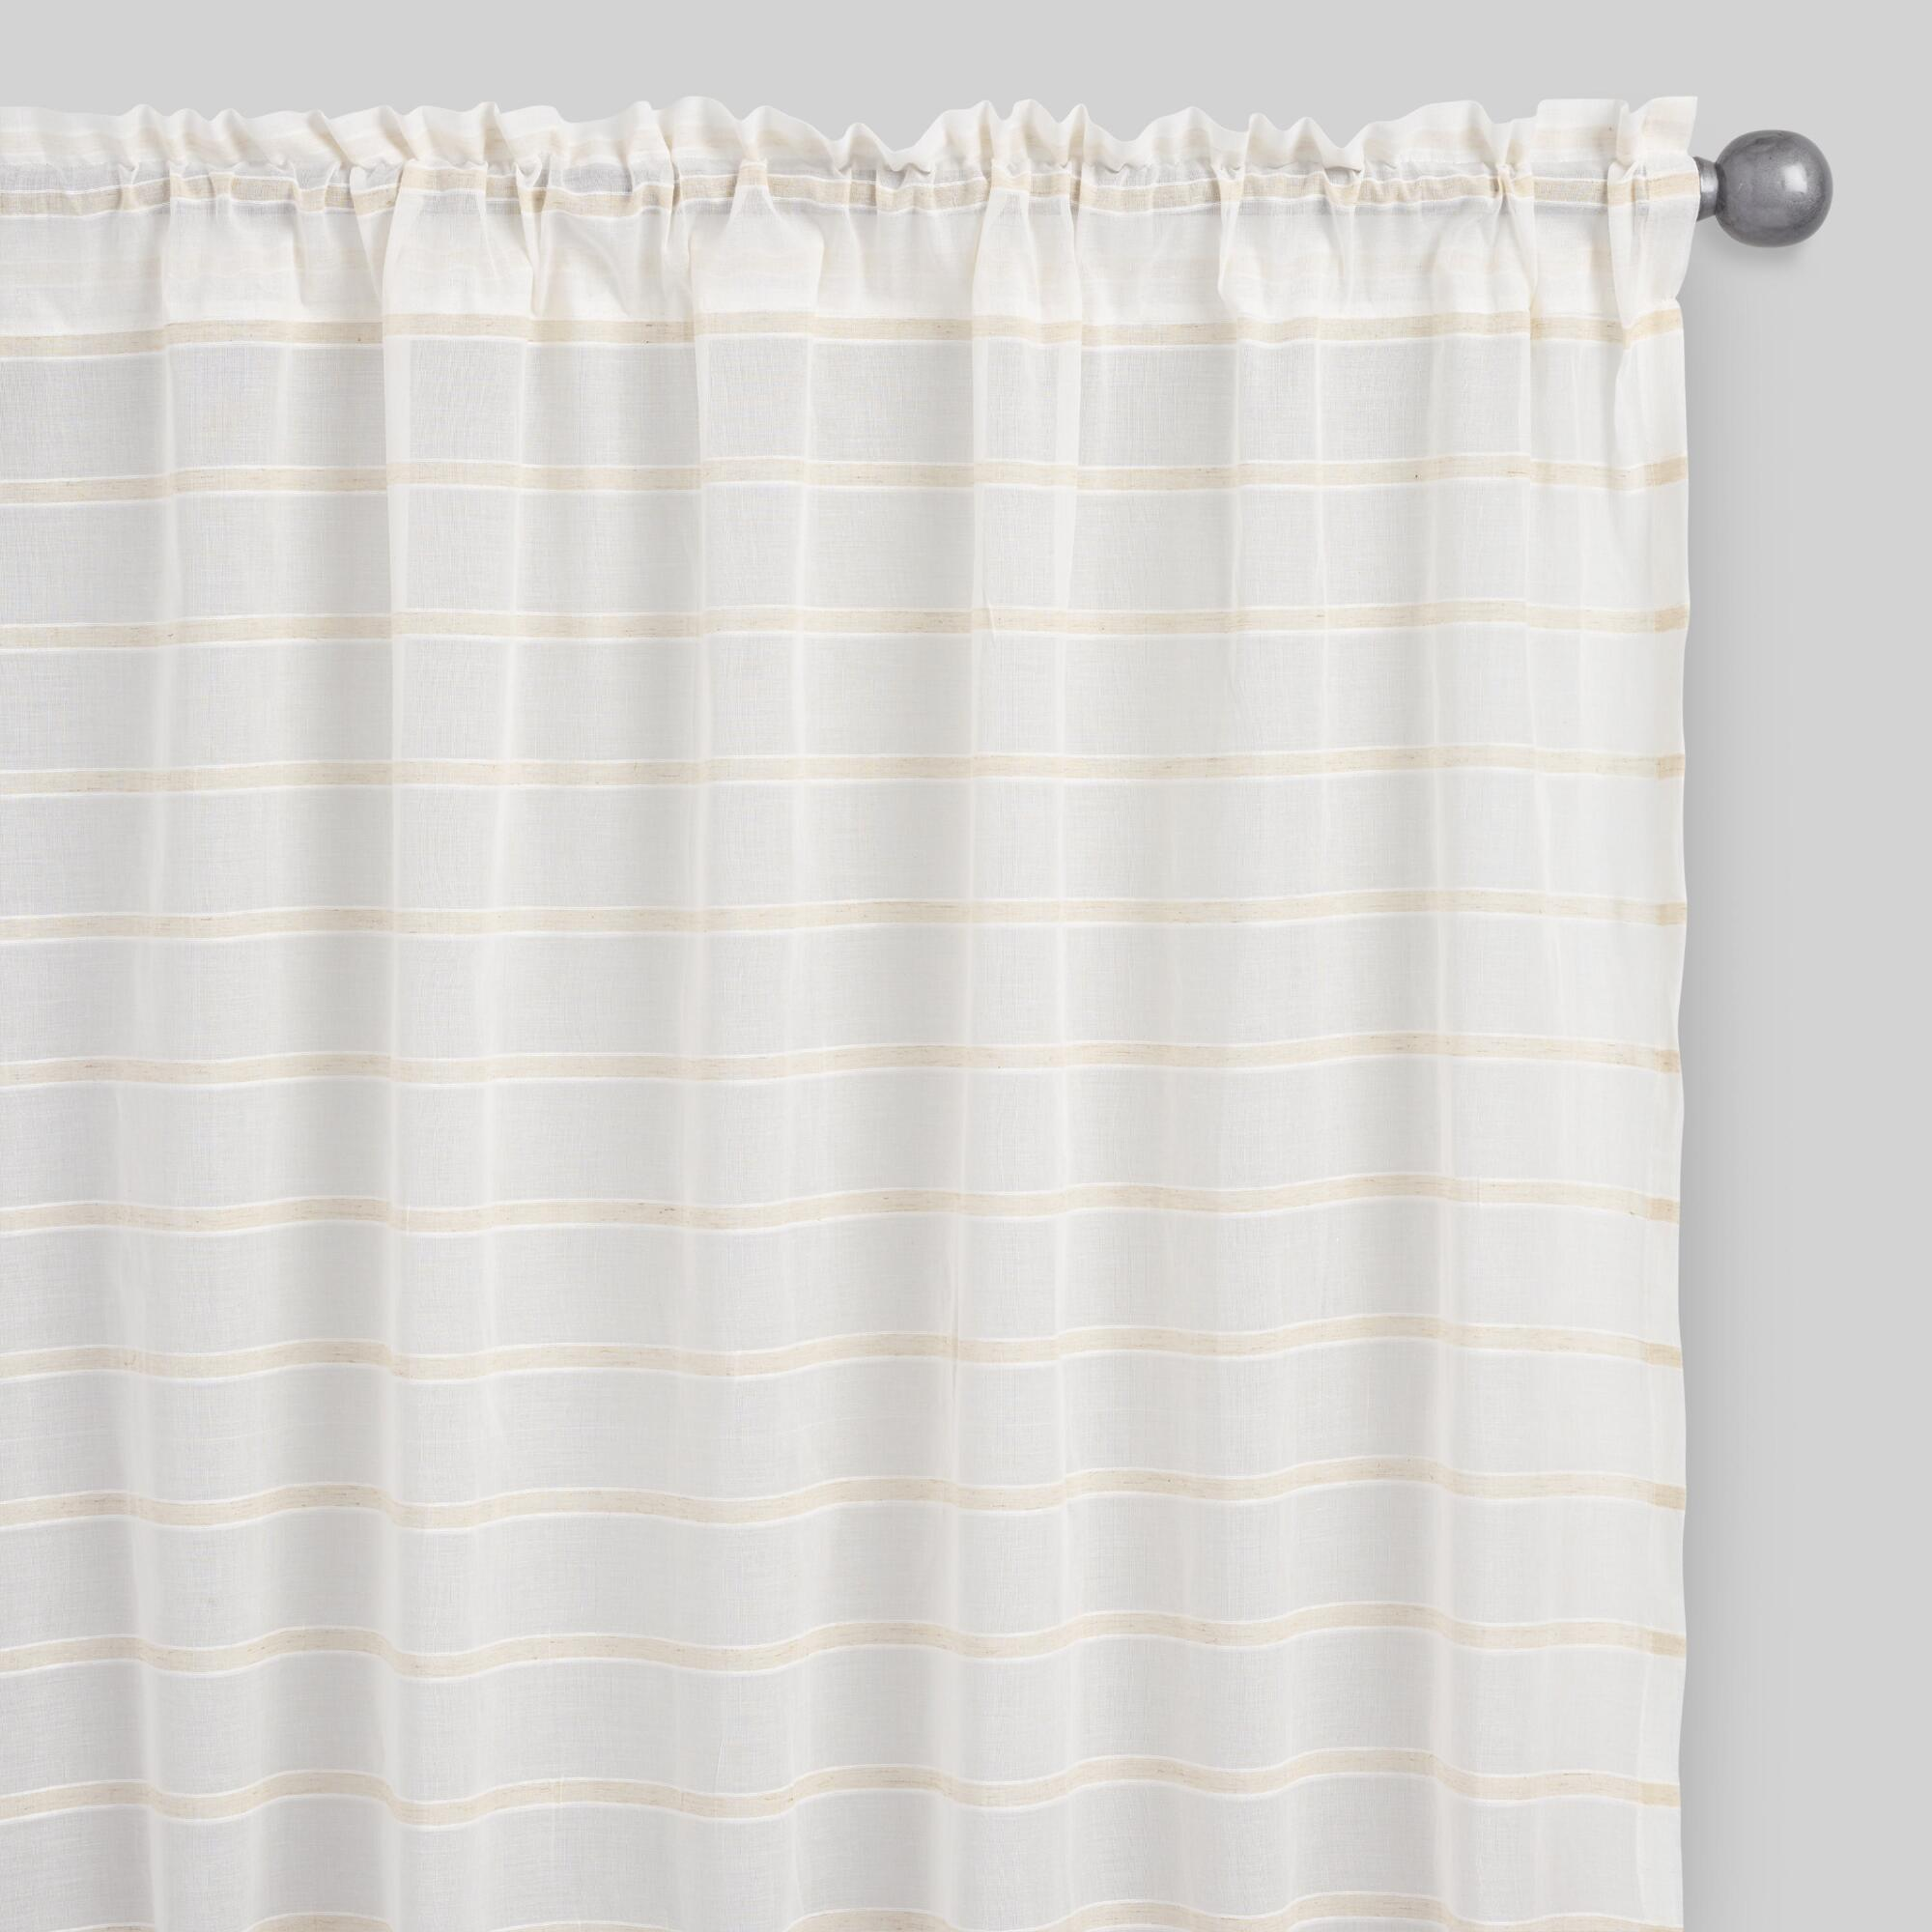 Threshold linen grommet sheer curtain panel product details page - Dobby Stripe Sheer Cotton Curtains Set Of 2